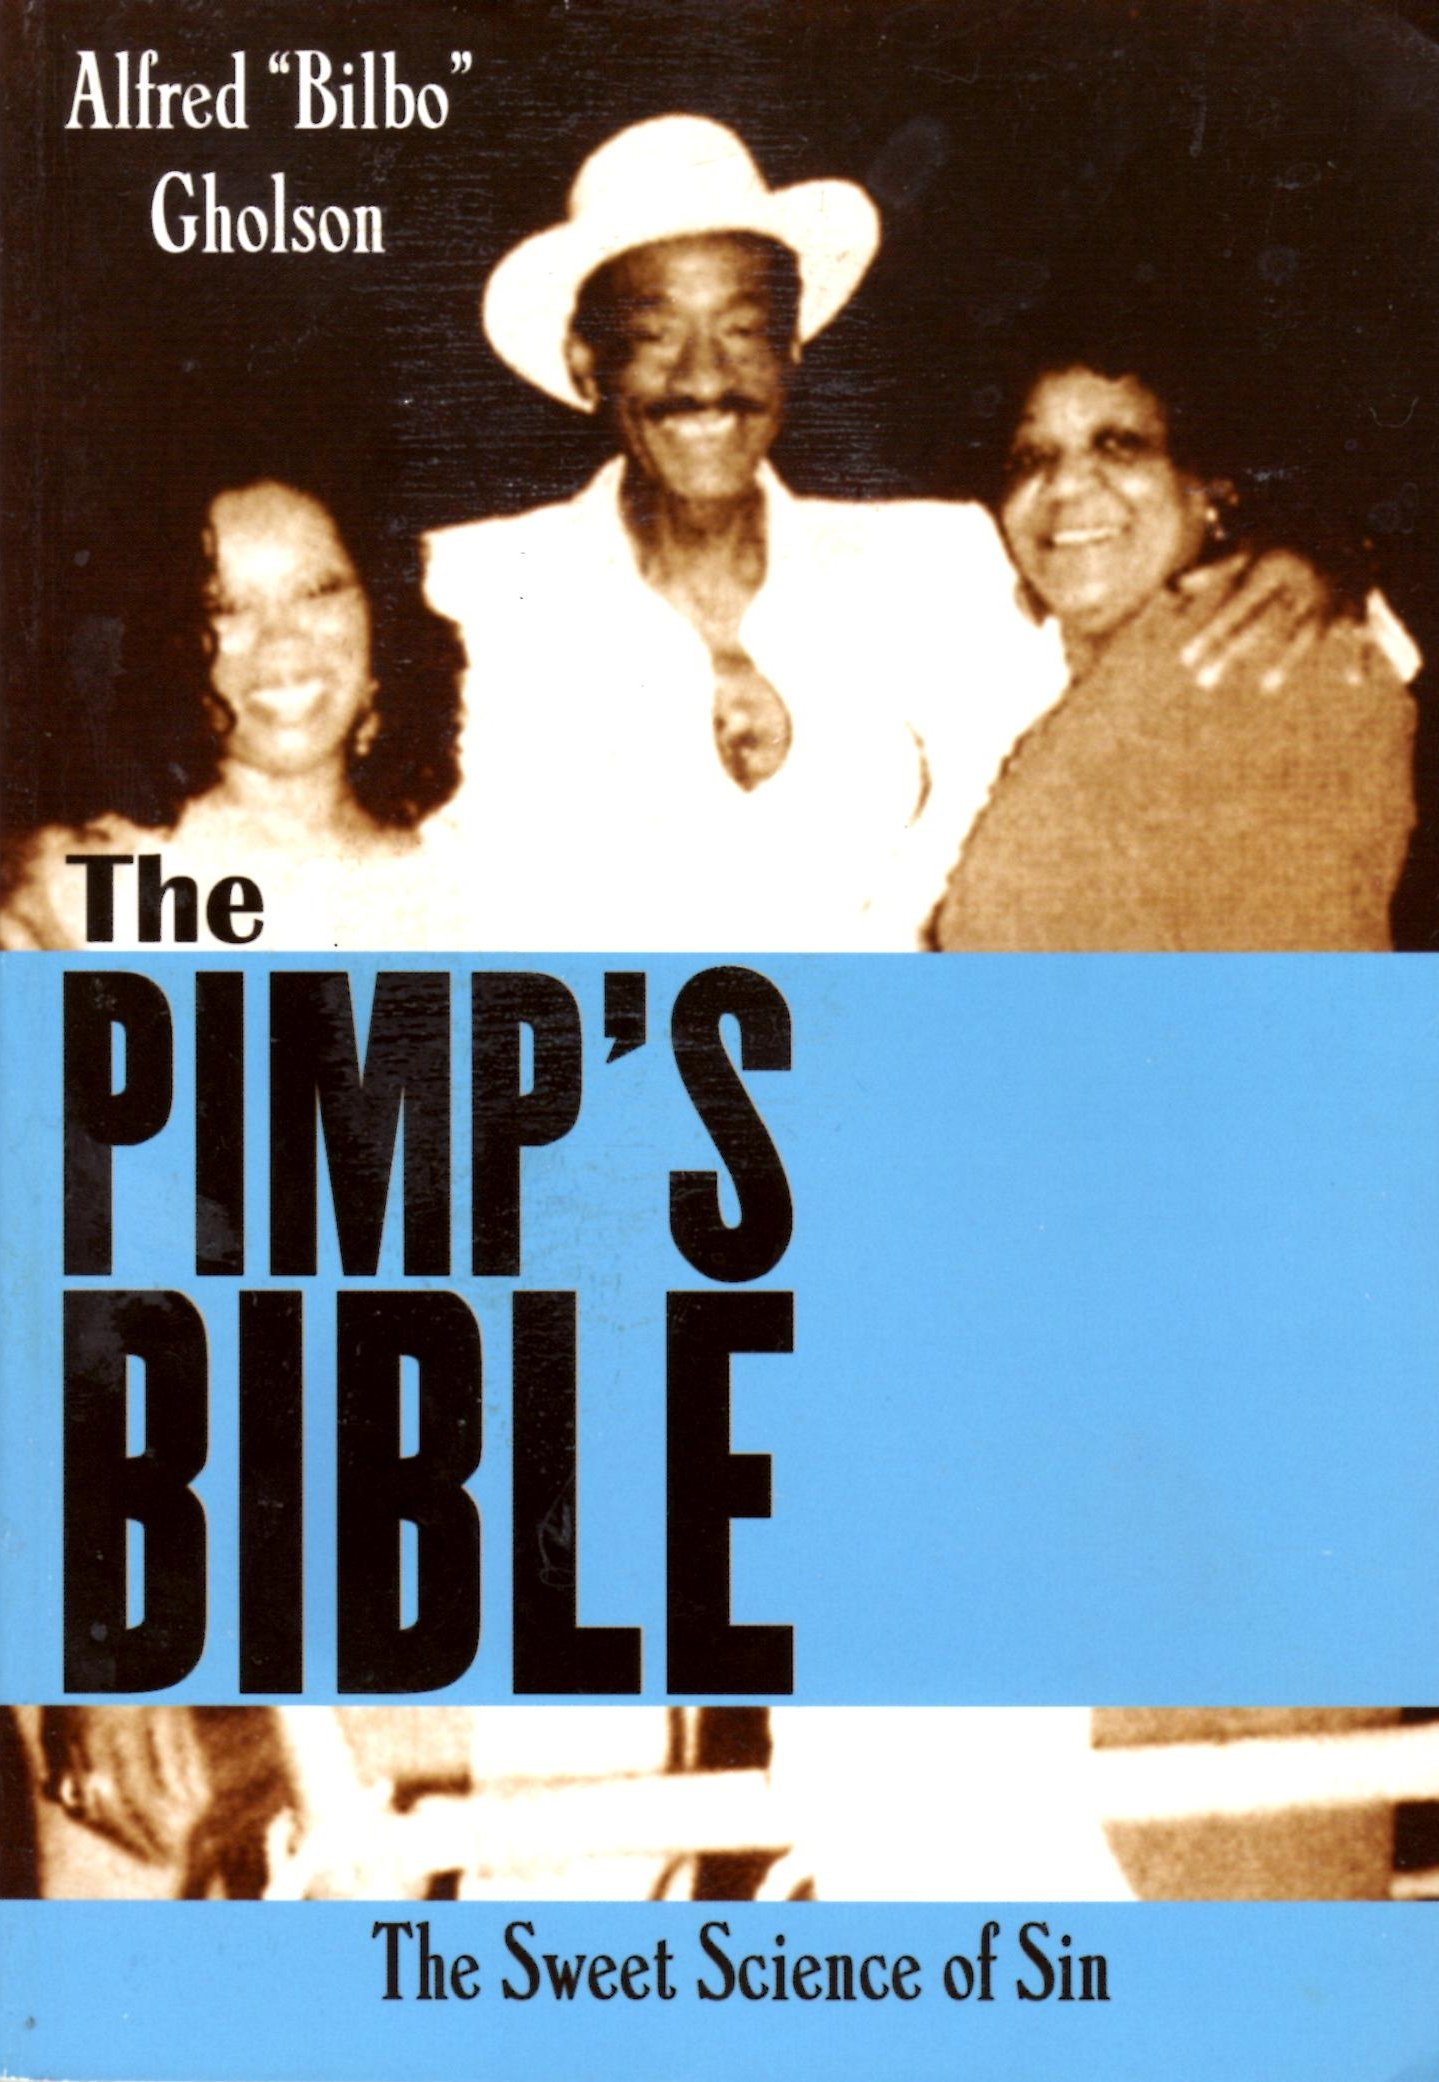 The pimps bible the sweet science of sin alfred bilbo gholson the pimps bible the sweet science of sin alfred bilbo gholson 9780948390791 amazon books fandeluxe Image collections